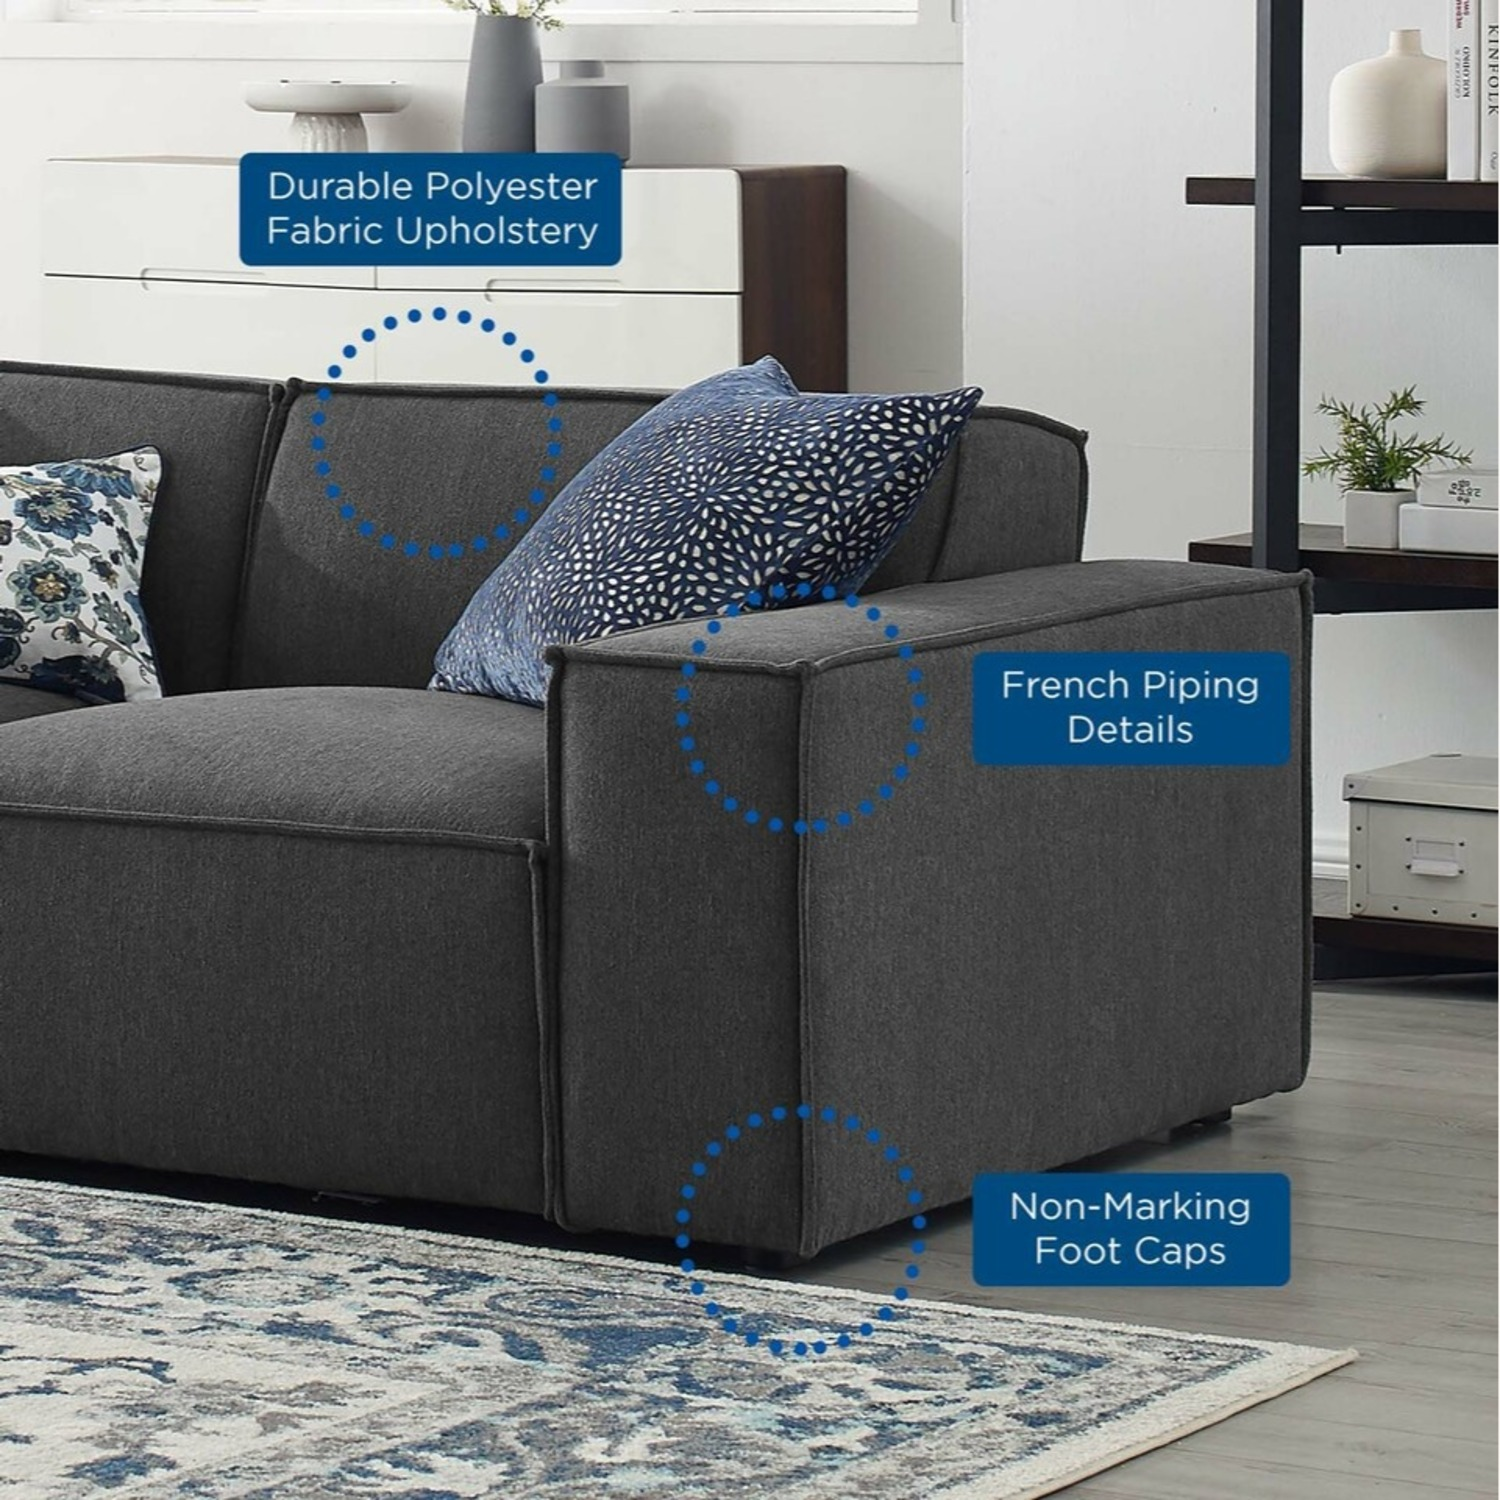 7-Piece Sectional Sofa In Charcoal Upholstery - image-11